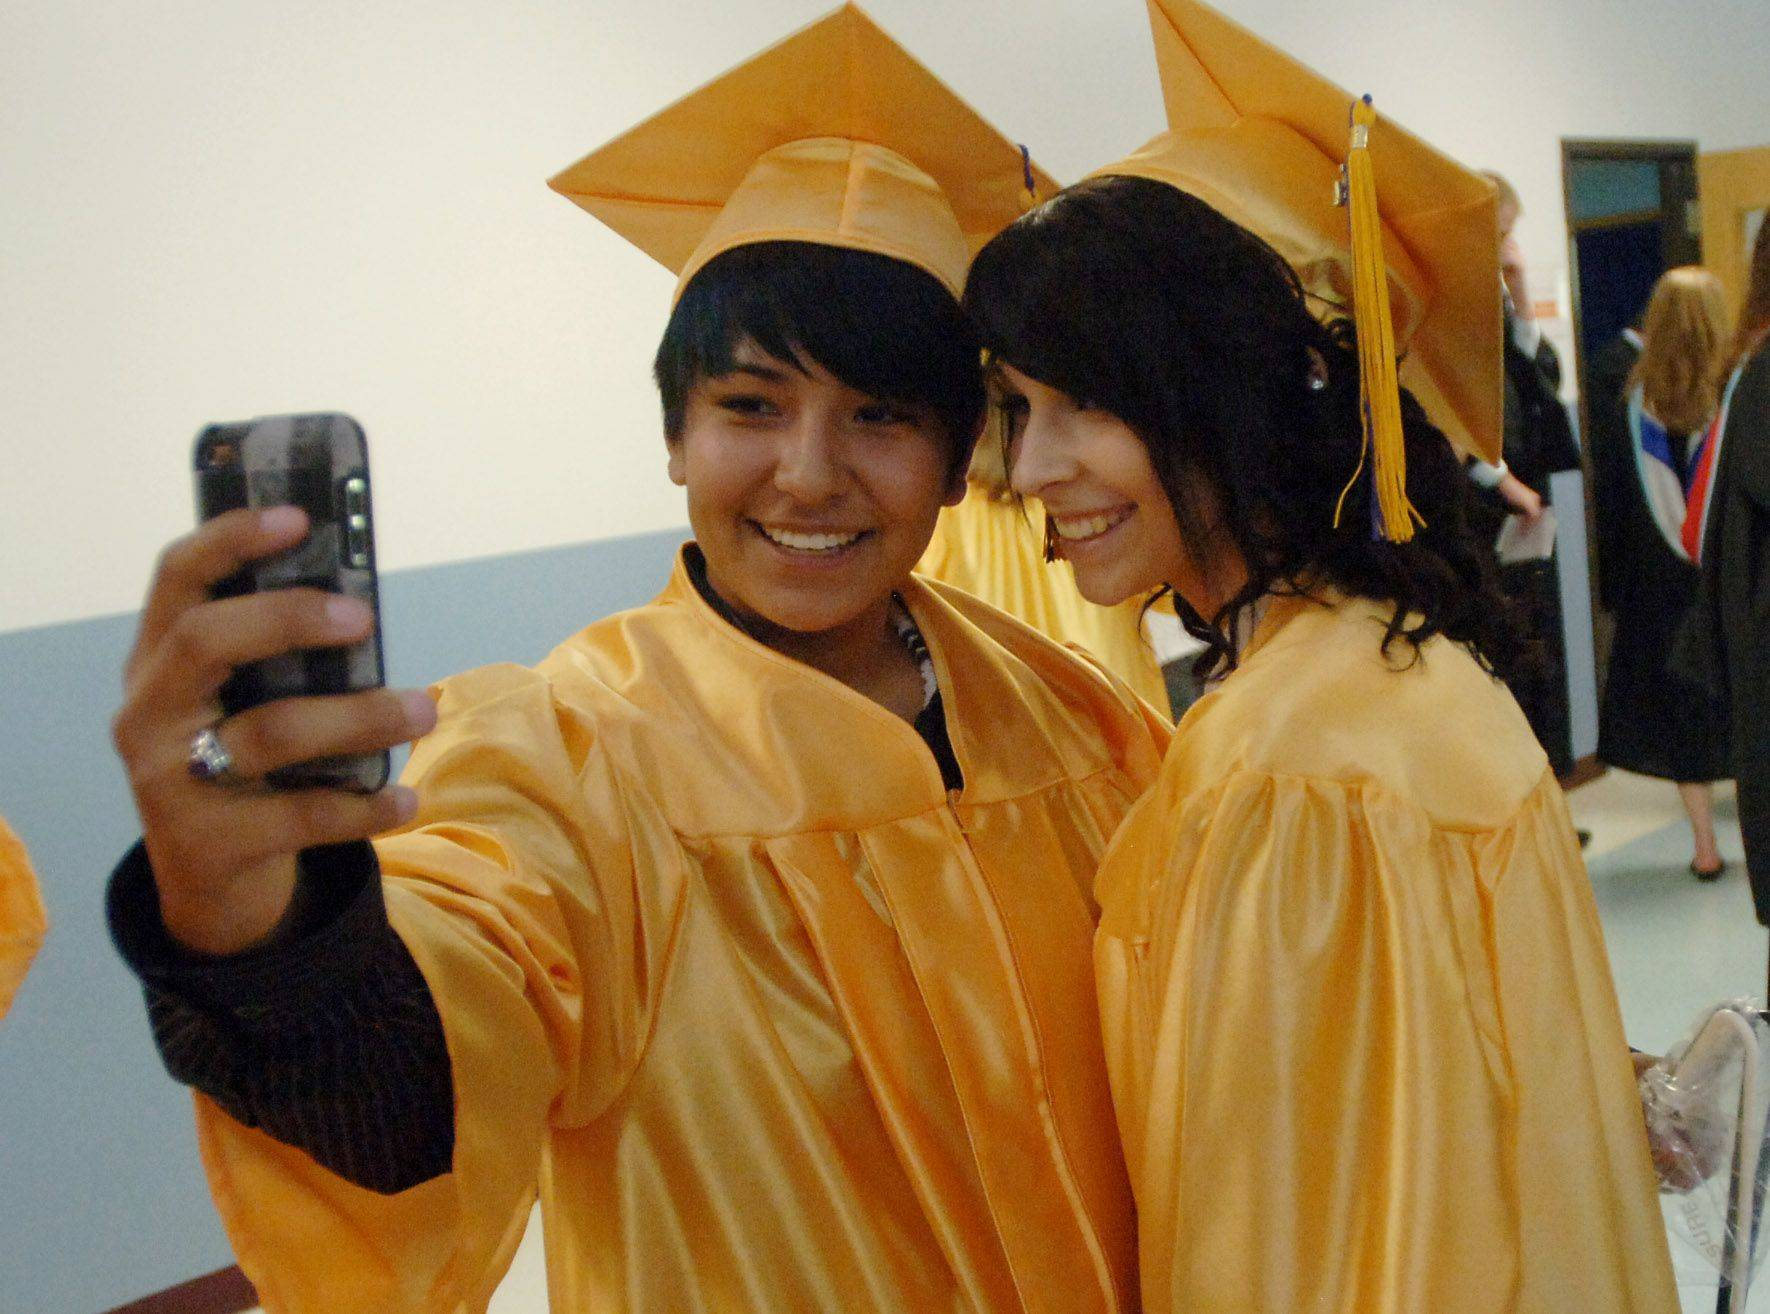 Wauconda High School graduate Alexis Lopez, left, takes photos with Ashley Brown during Sunday's commencement ceremony at the Quentin Road Bible Baptist Church in Lake Zurich.